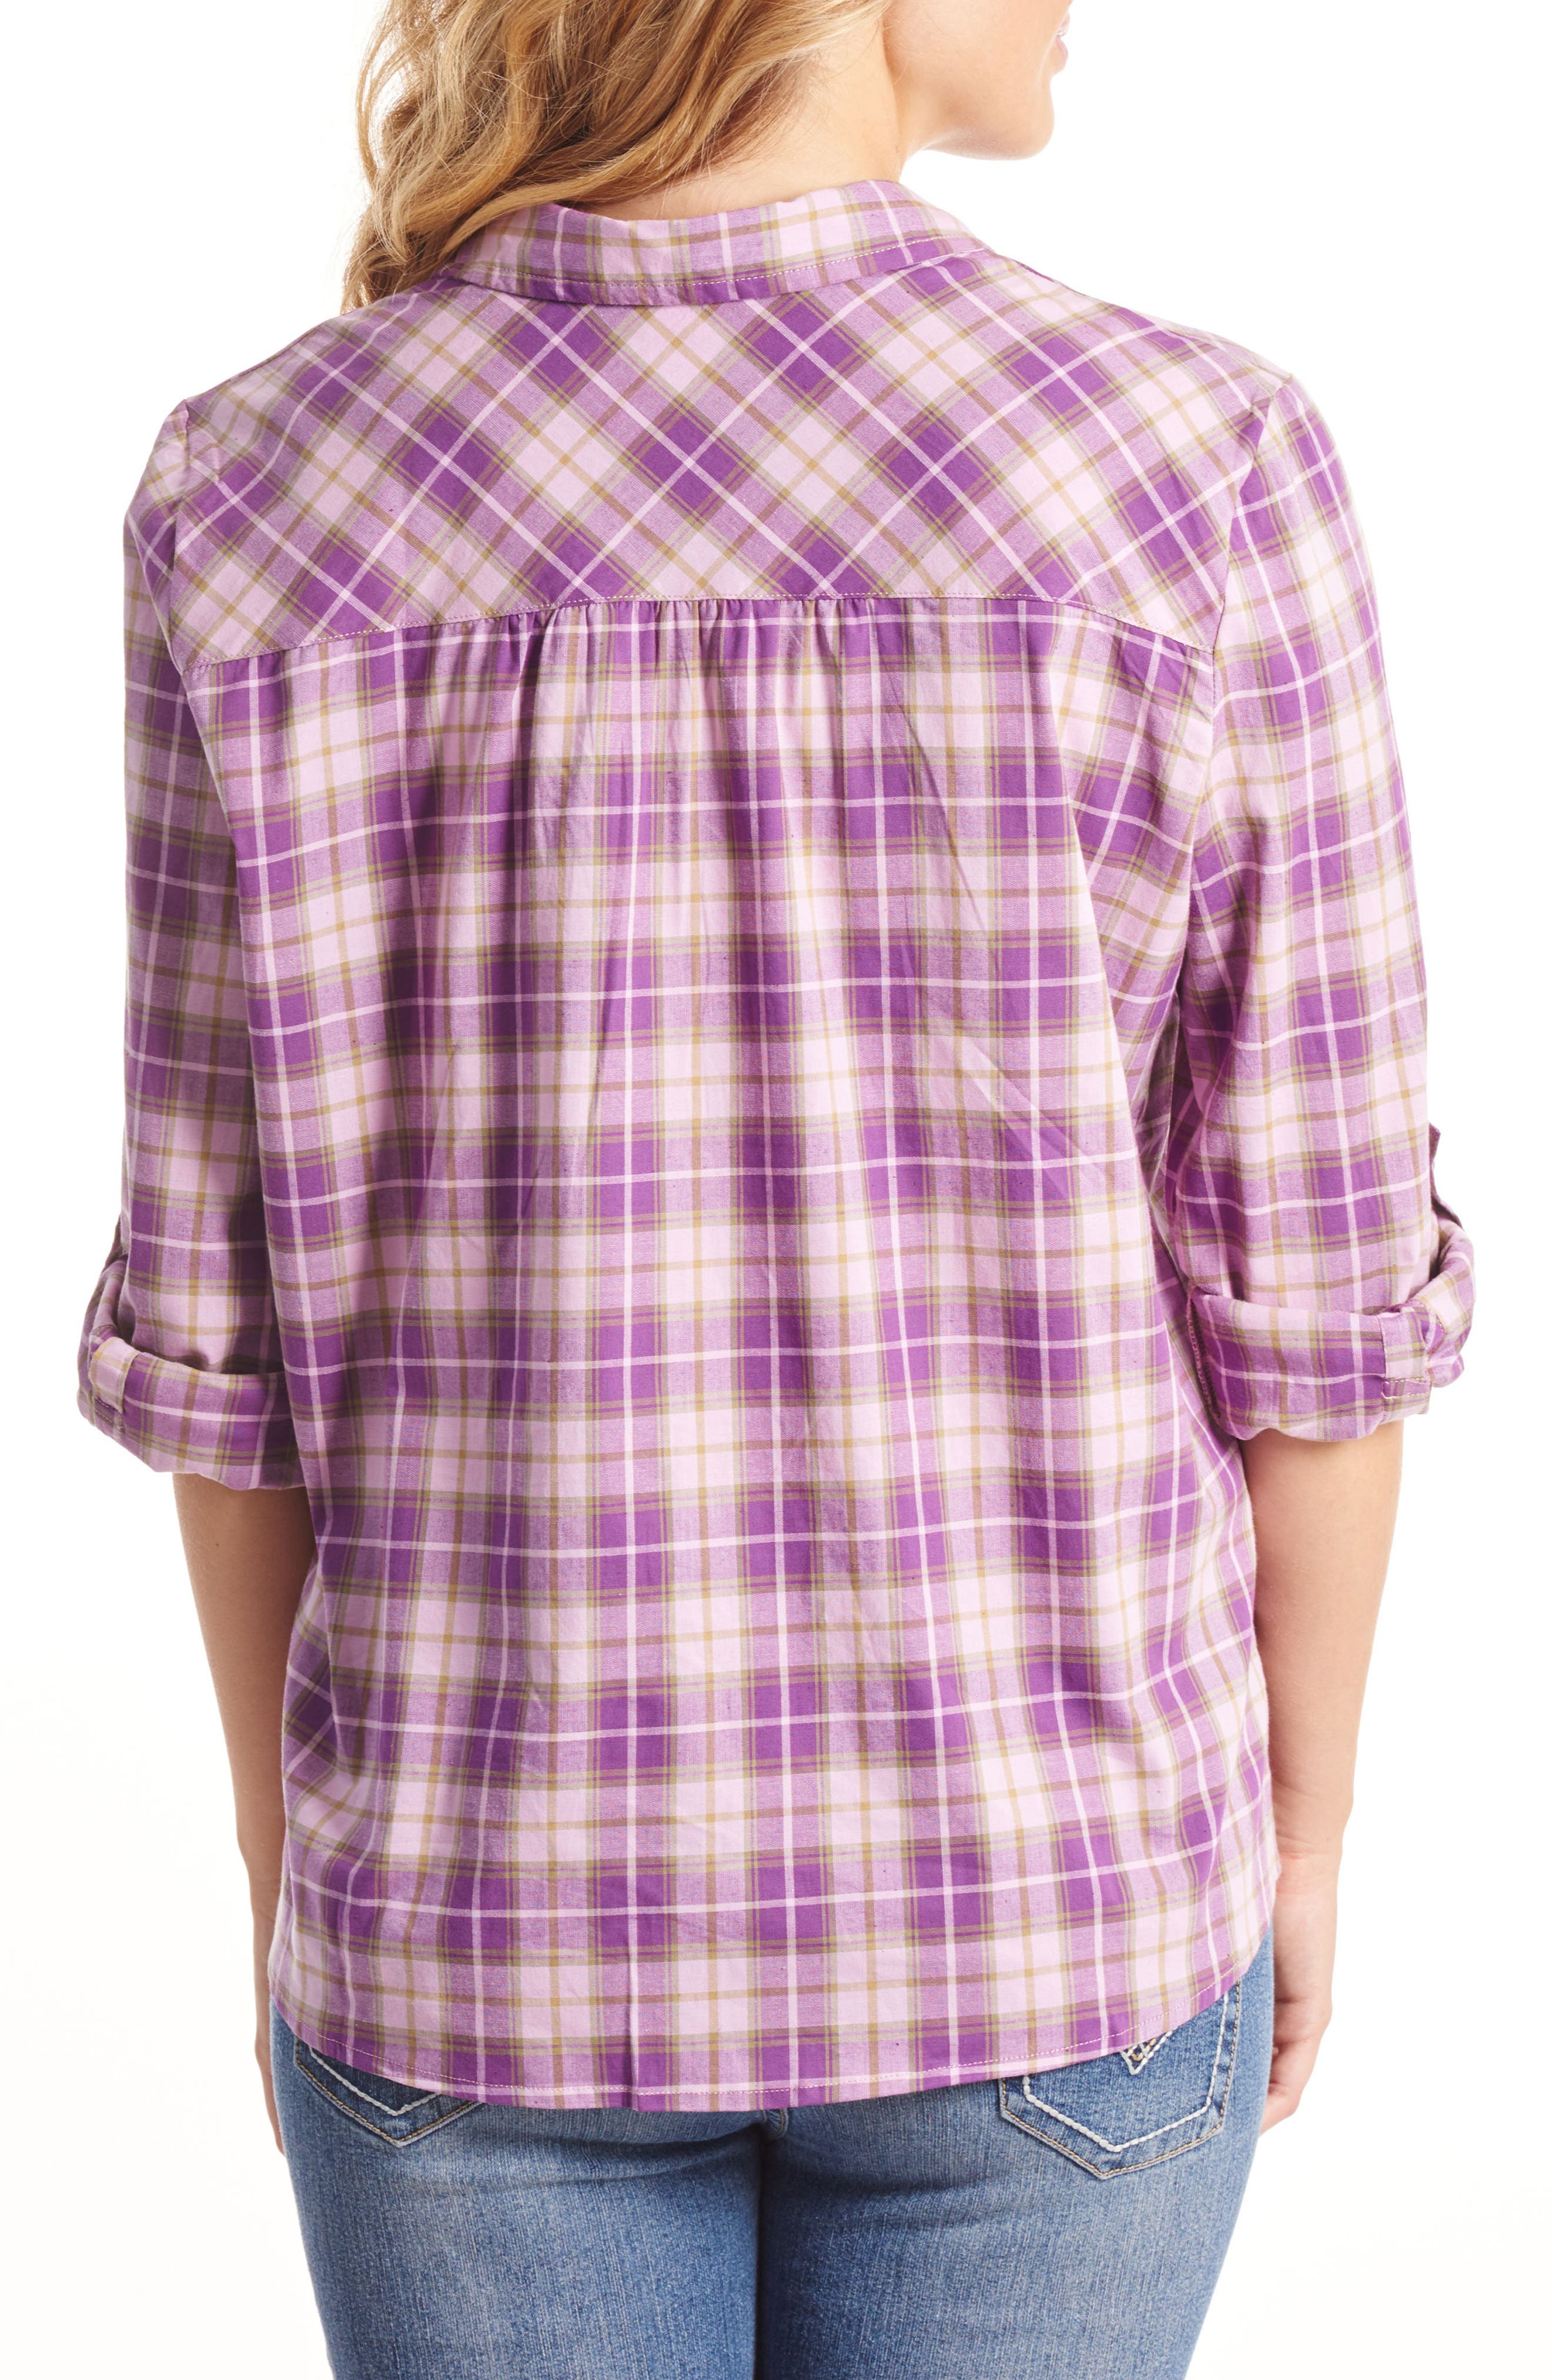 'Batina' Maternity Shirt,                             Alternate thumbnail 2, color,                             Lilac Plaid